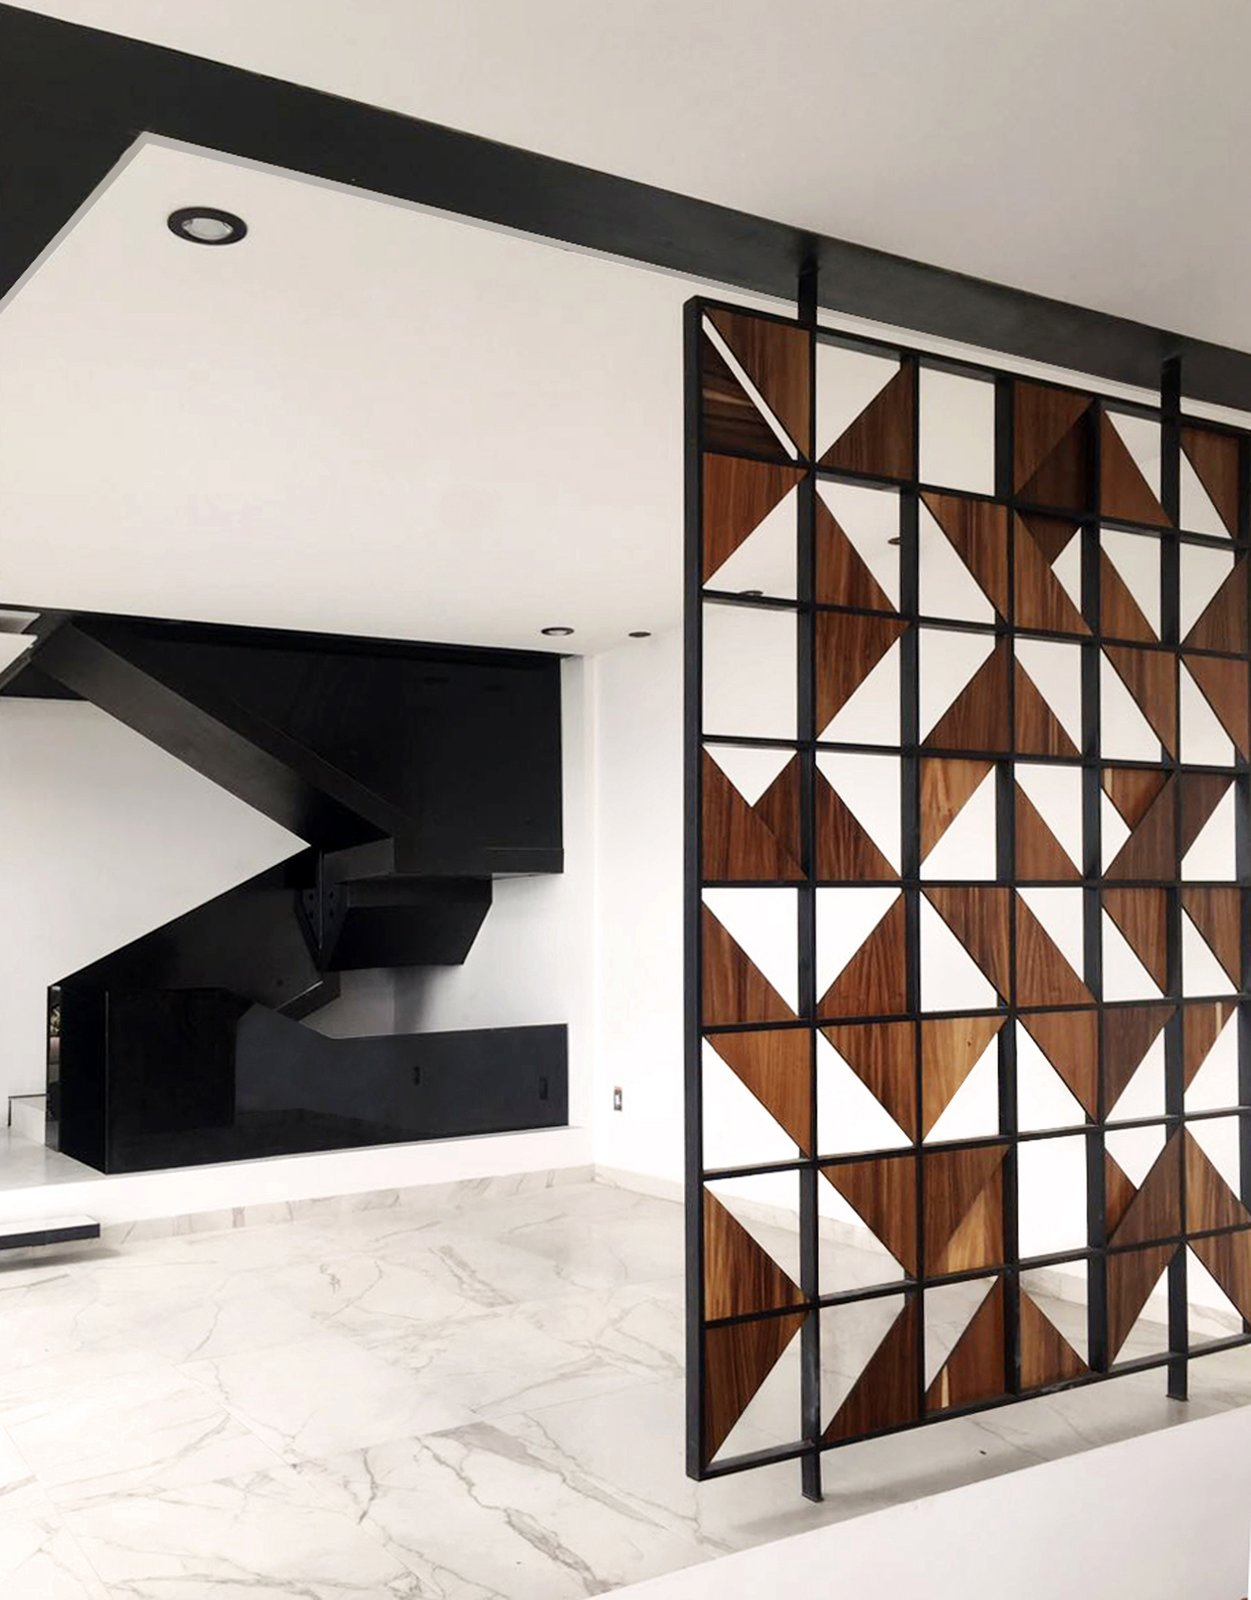 Dining Room, Shelves, and Porcelain Tile Floor Detail - Lattice and Stairs  Casa AB by e|arquitectos